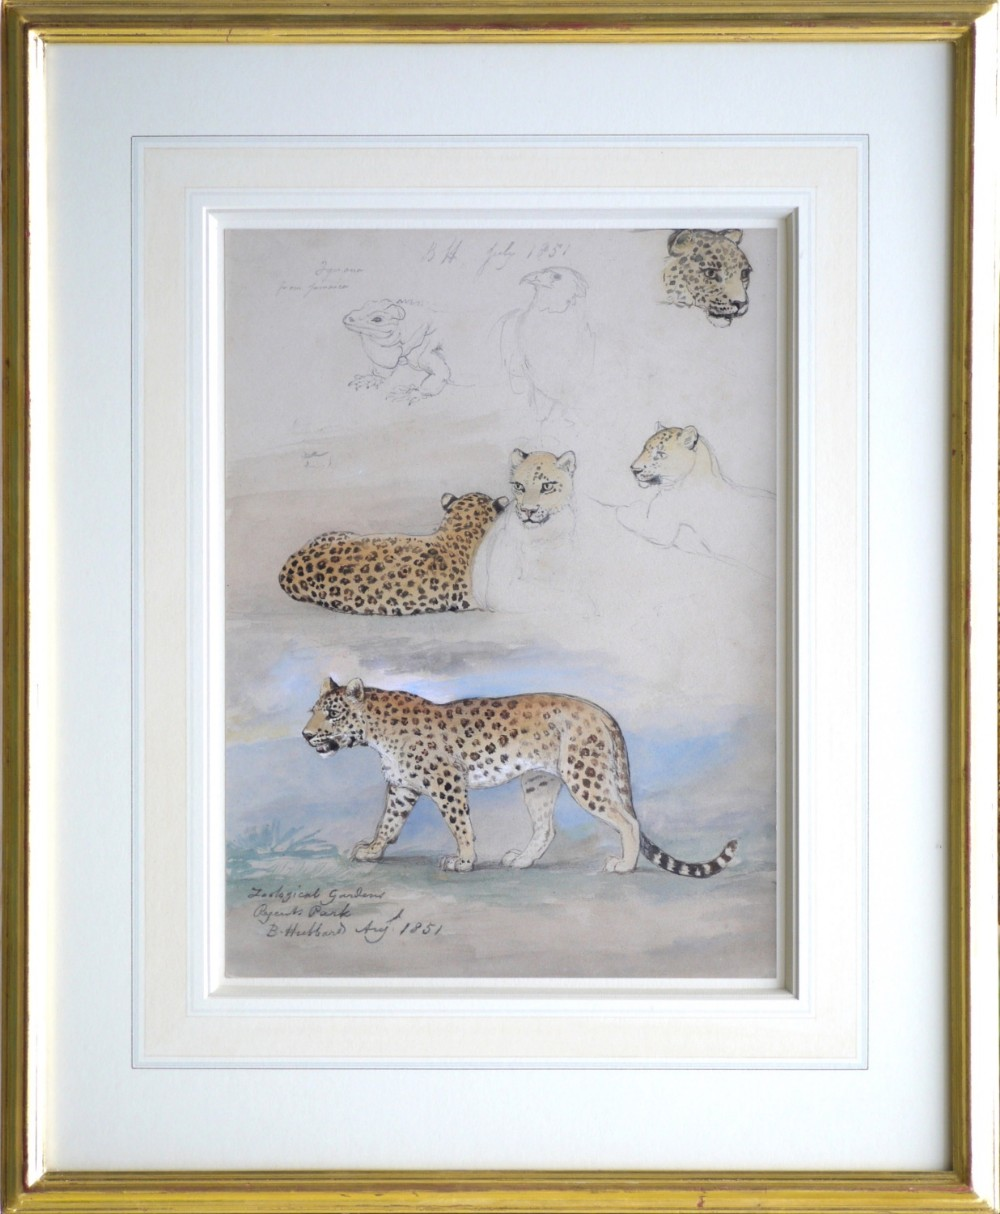 watercolour dated 1851 by bennett hubbard study of a jaguar at london zoo